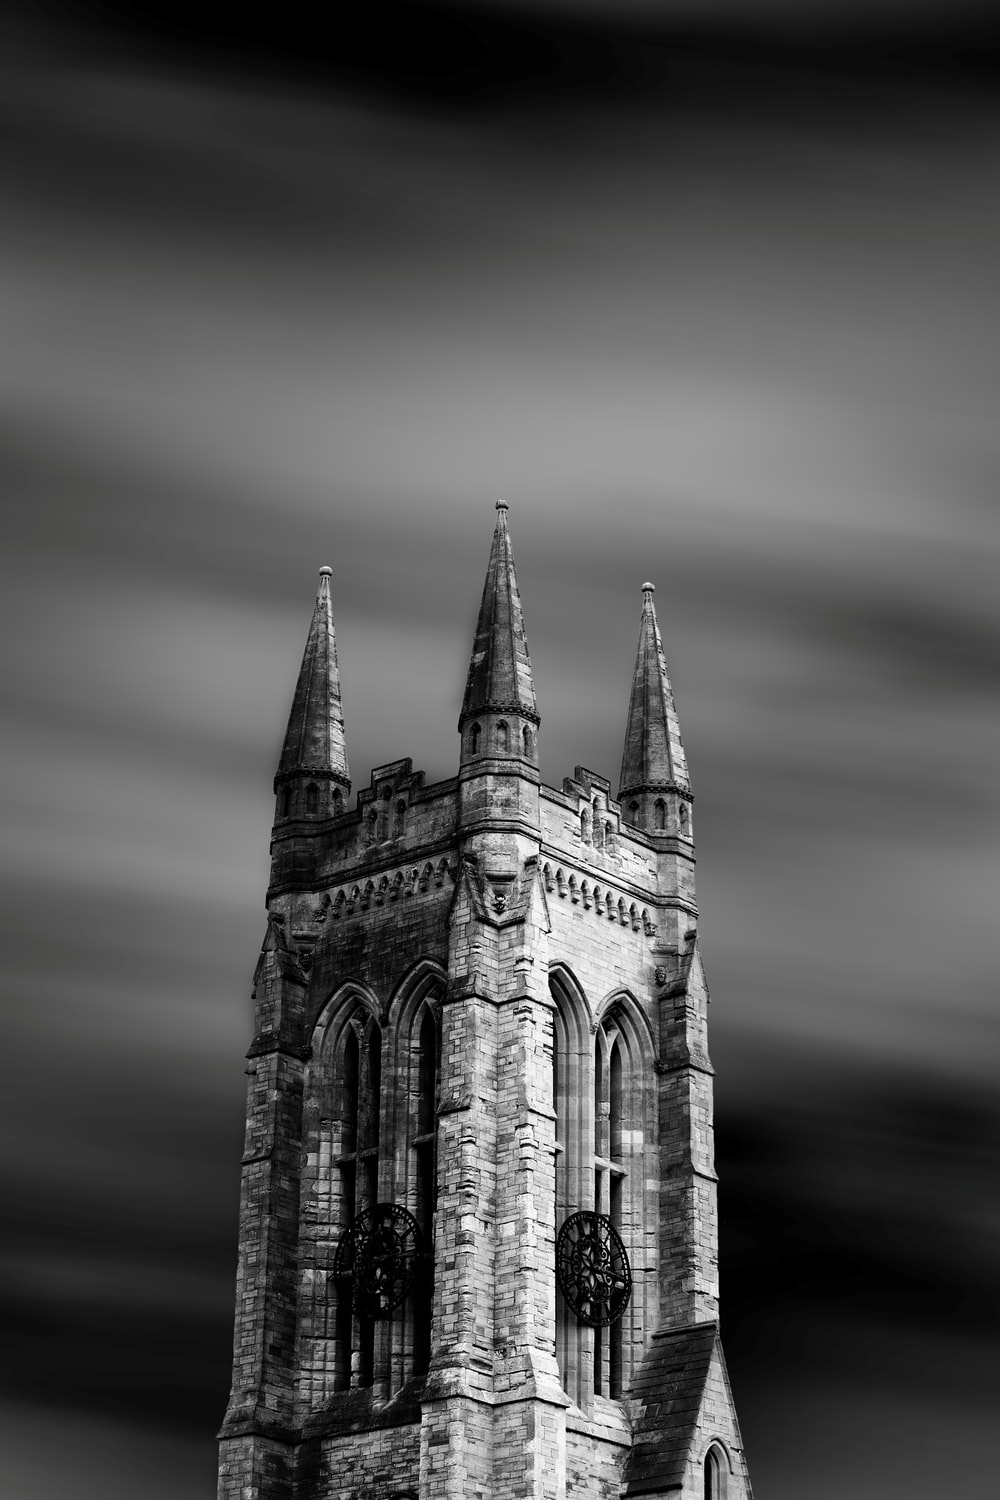 grayscale photo of castle tower